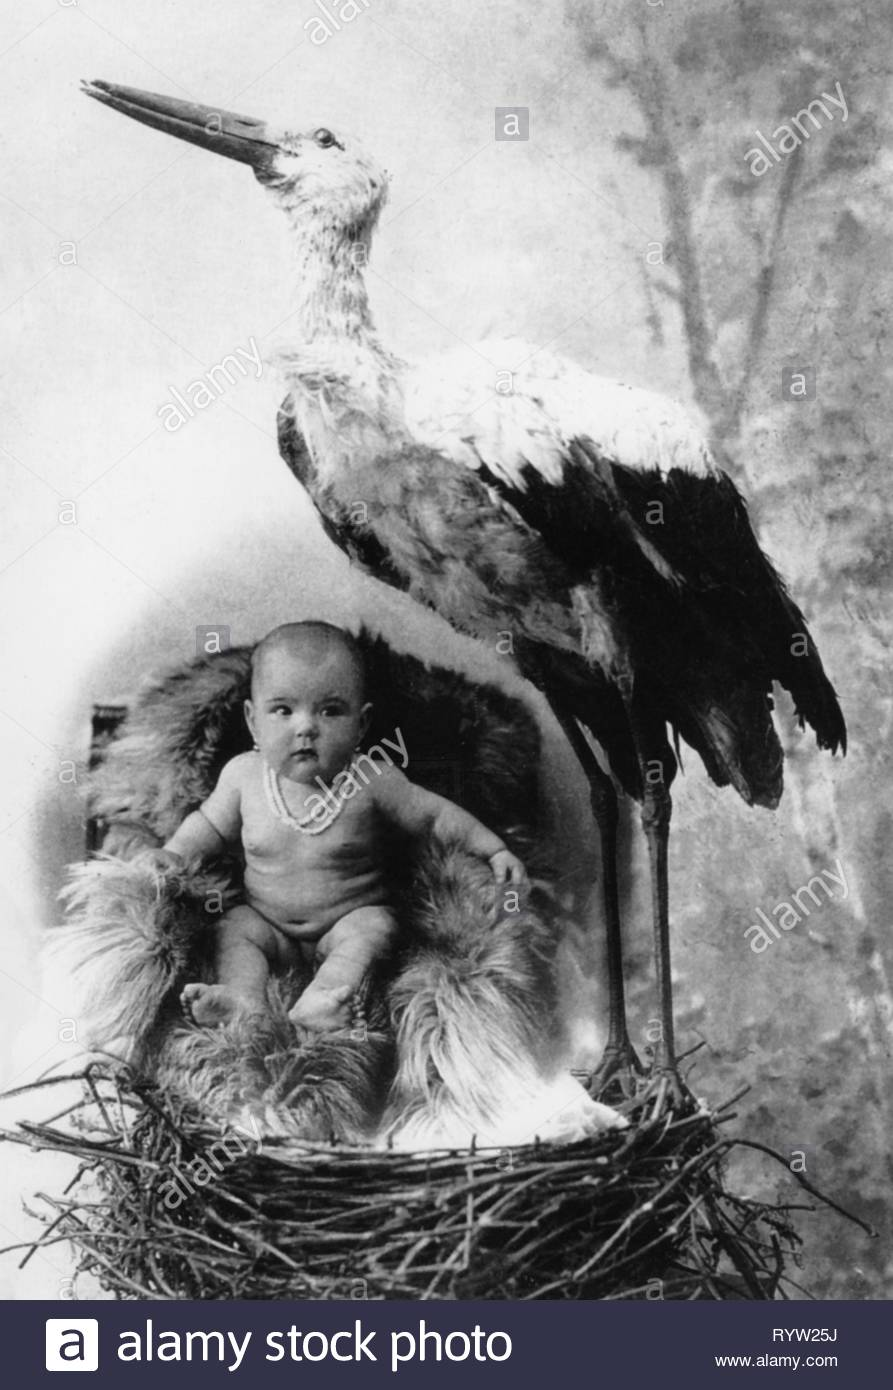 people, children, babies, stork besides baby, 1920s, Additional-Rights-Clearance-Info-Not-Available - Stock Image